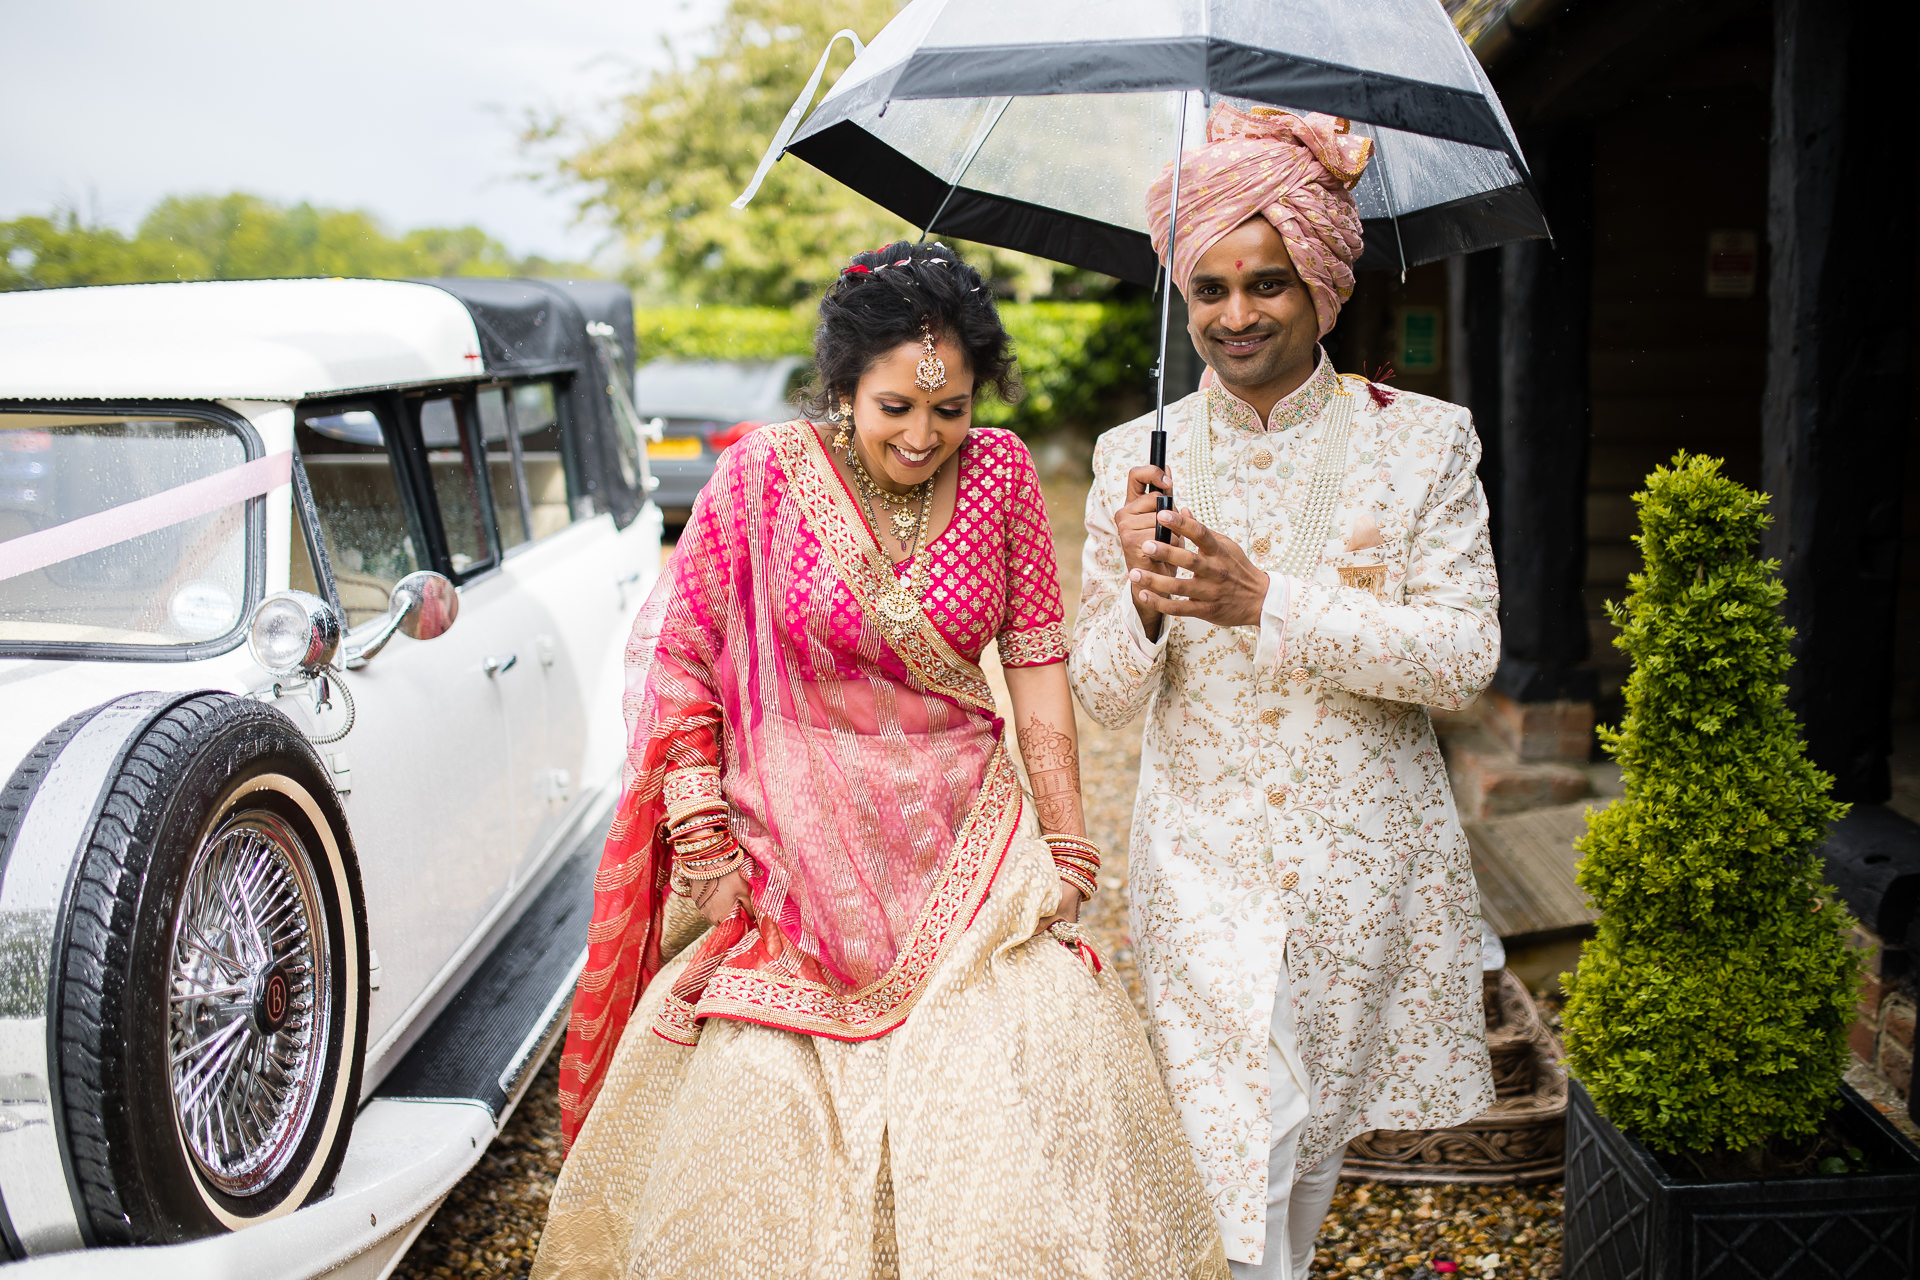 Asian wedding couple portraits at The Priory Barn in Hitchin